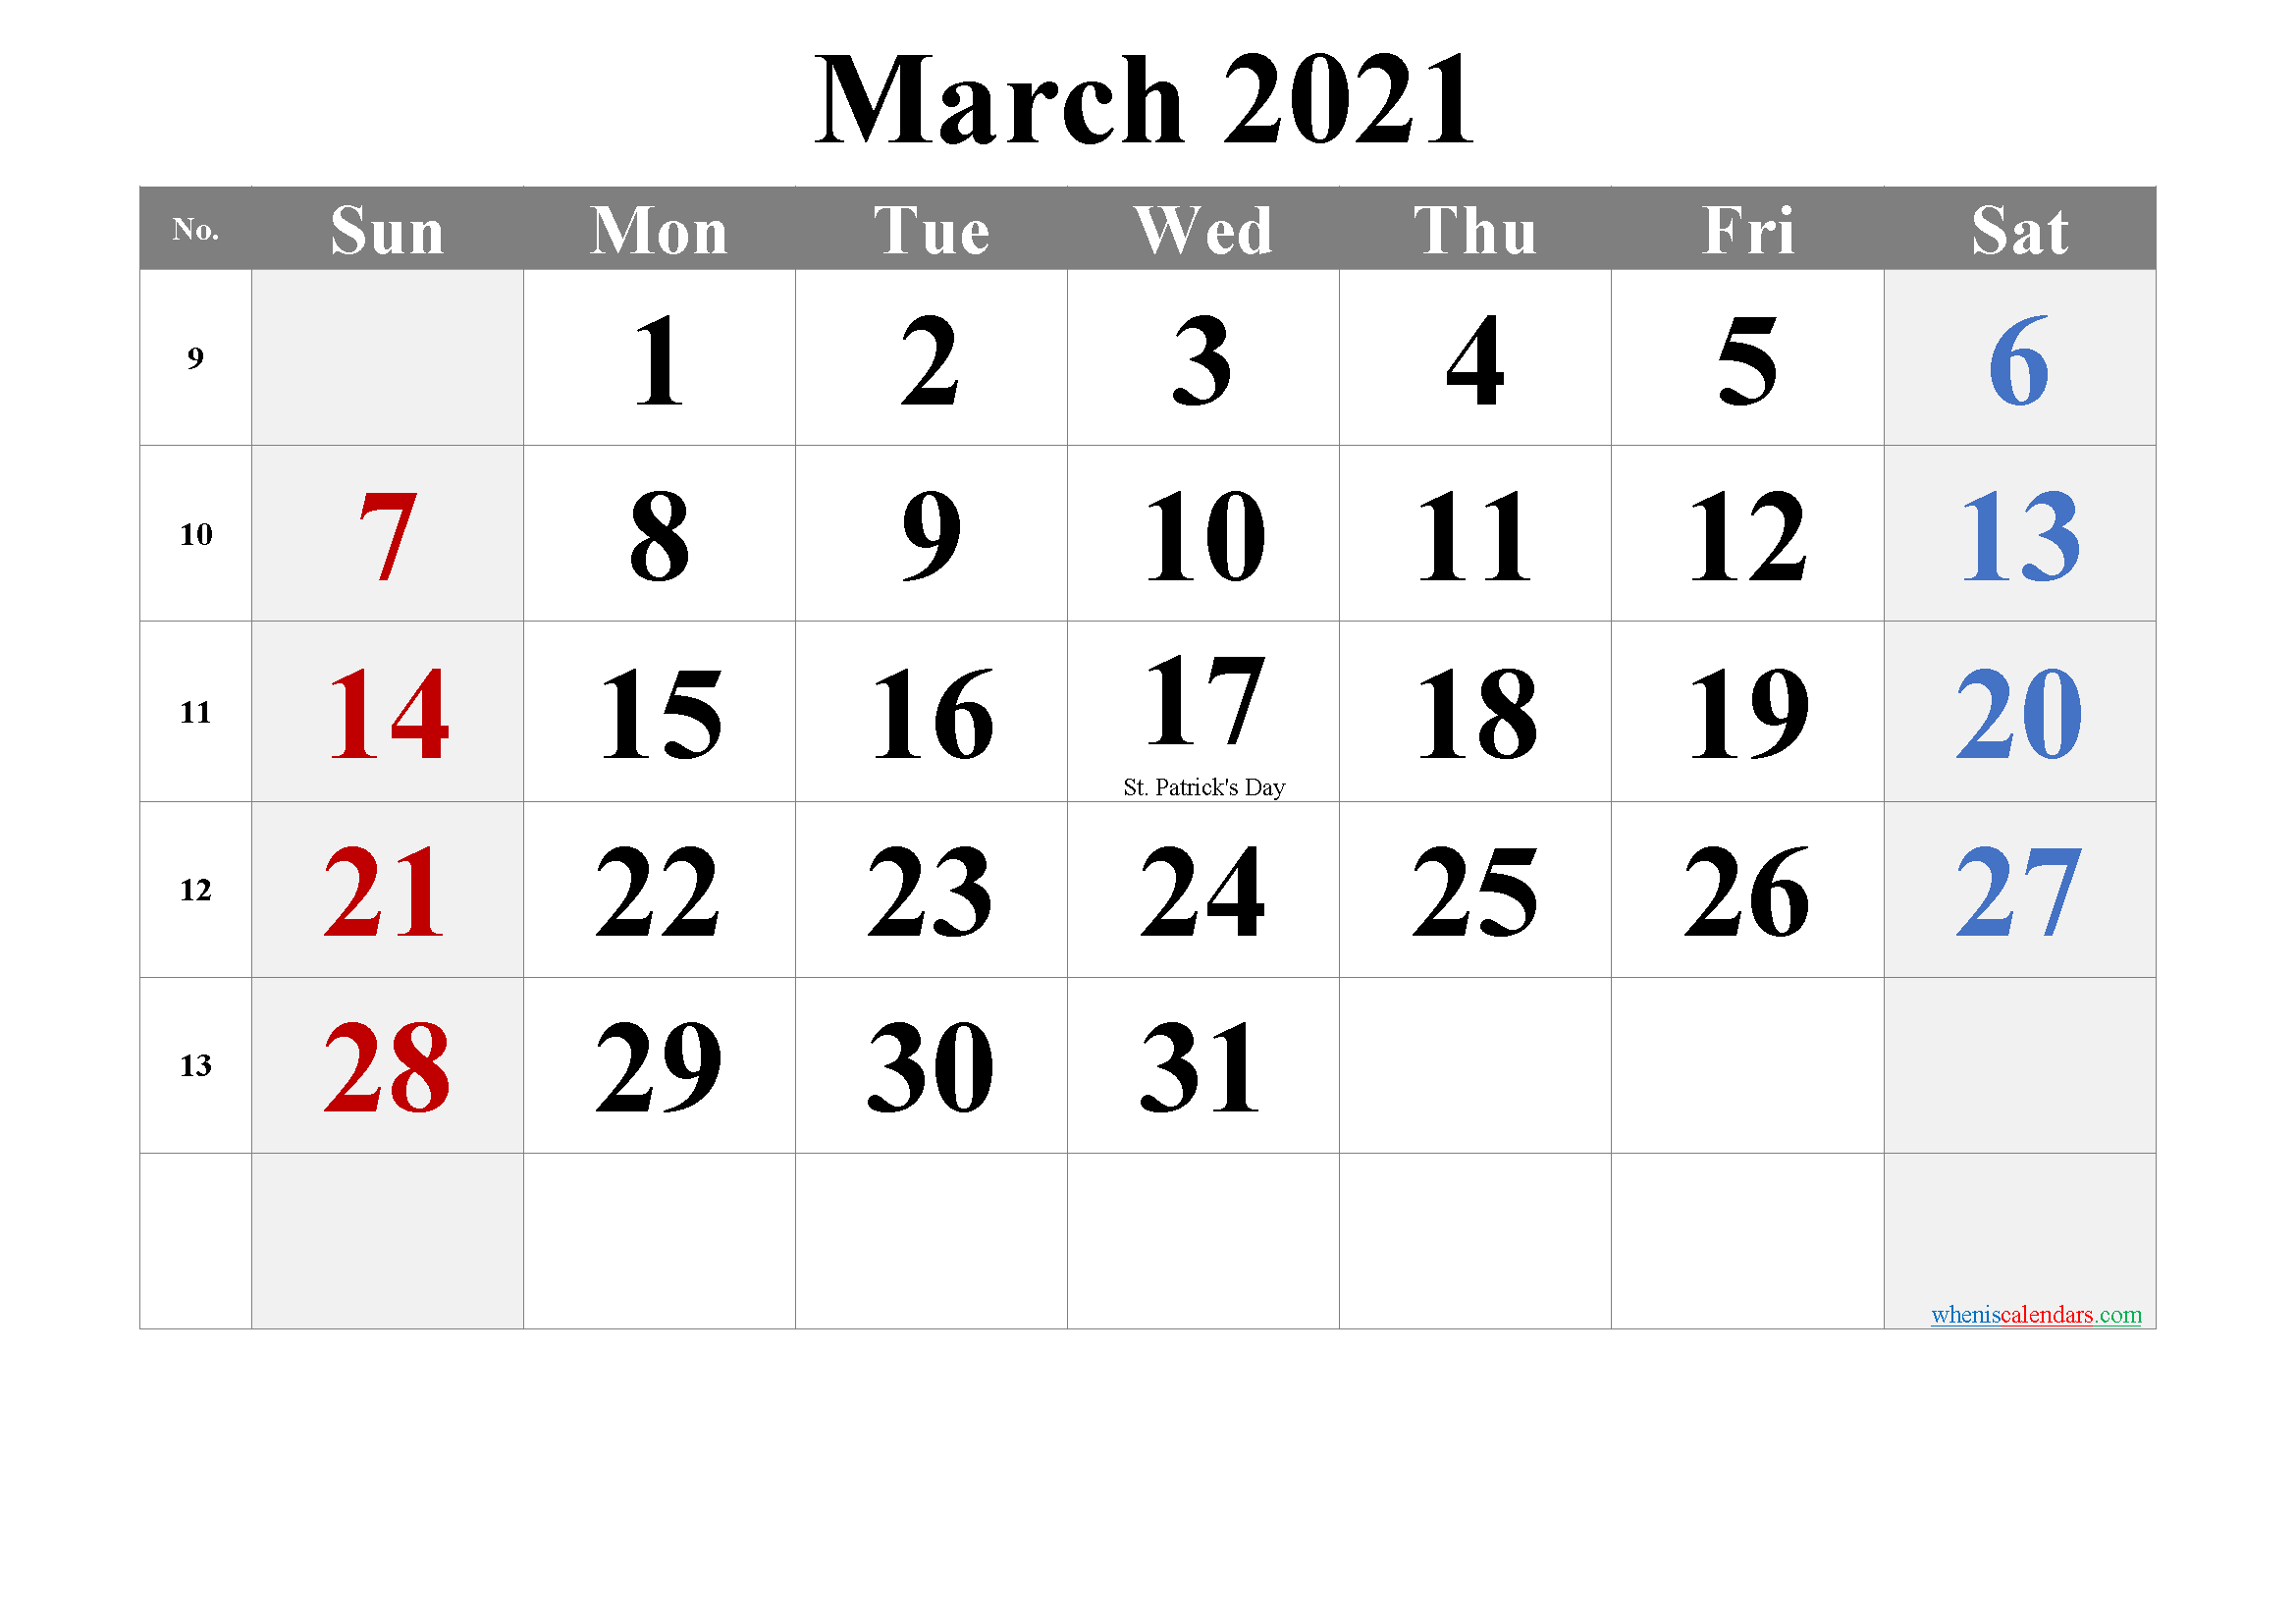 MARCH 2021 Printable Calendar with Holidays